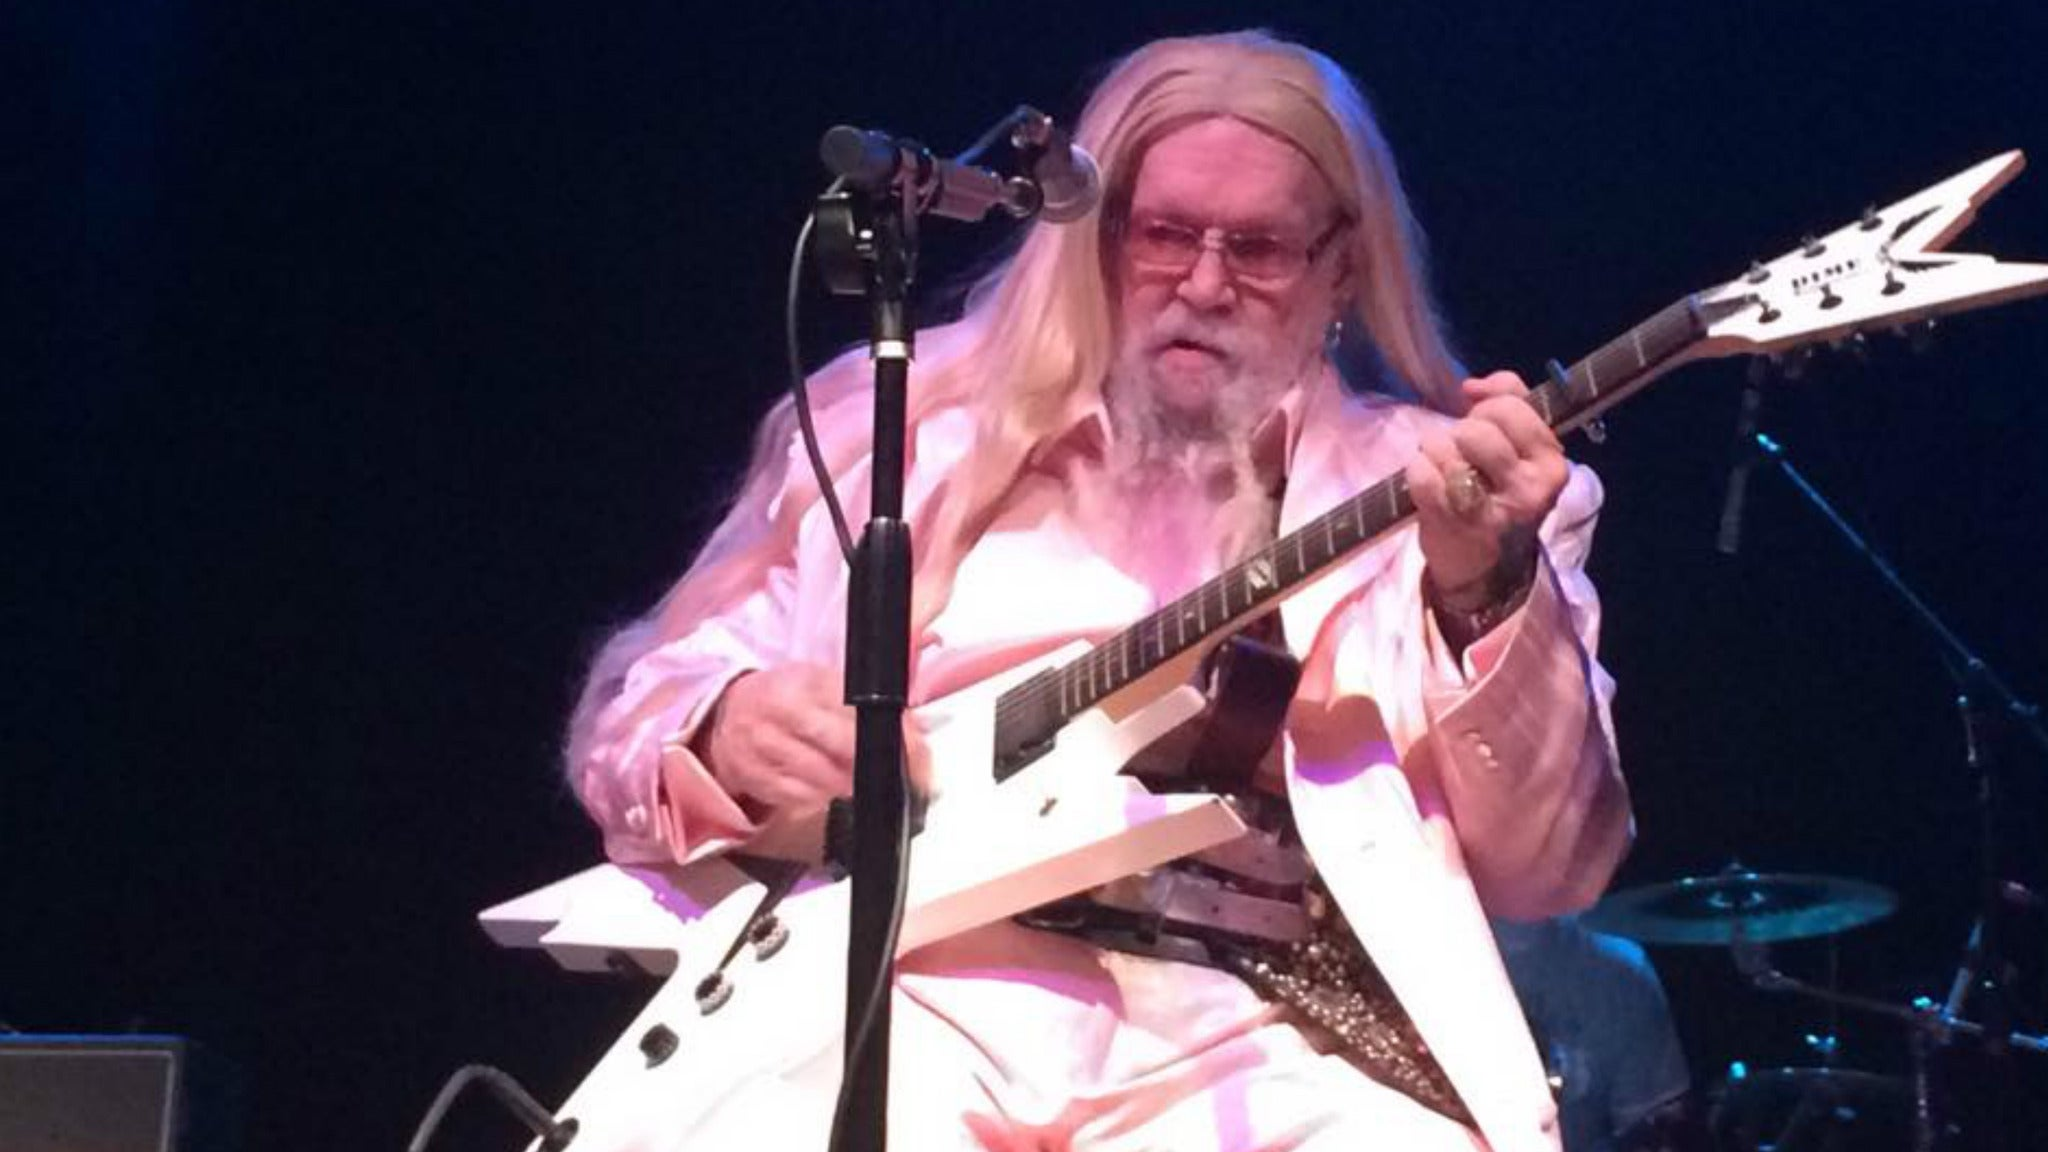 David Allan Coe at The Texas Club